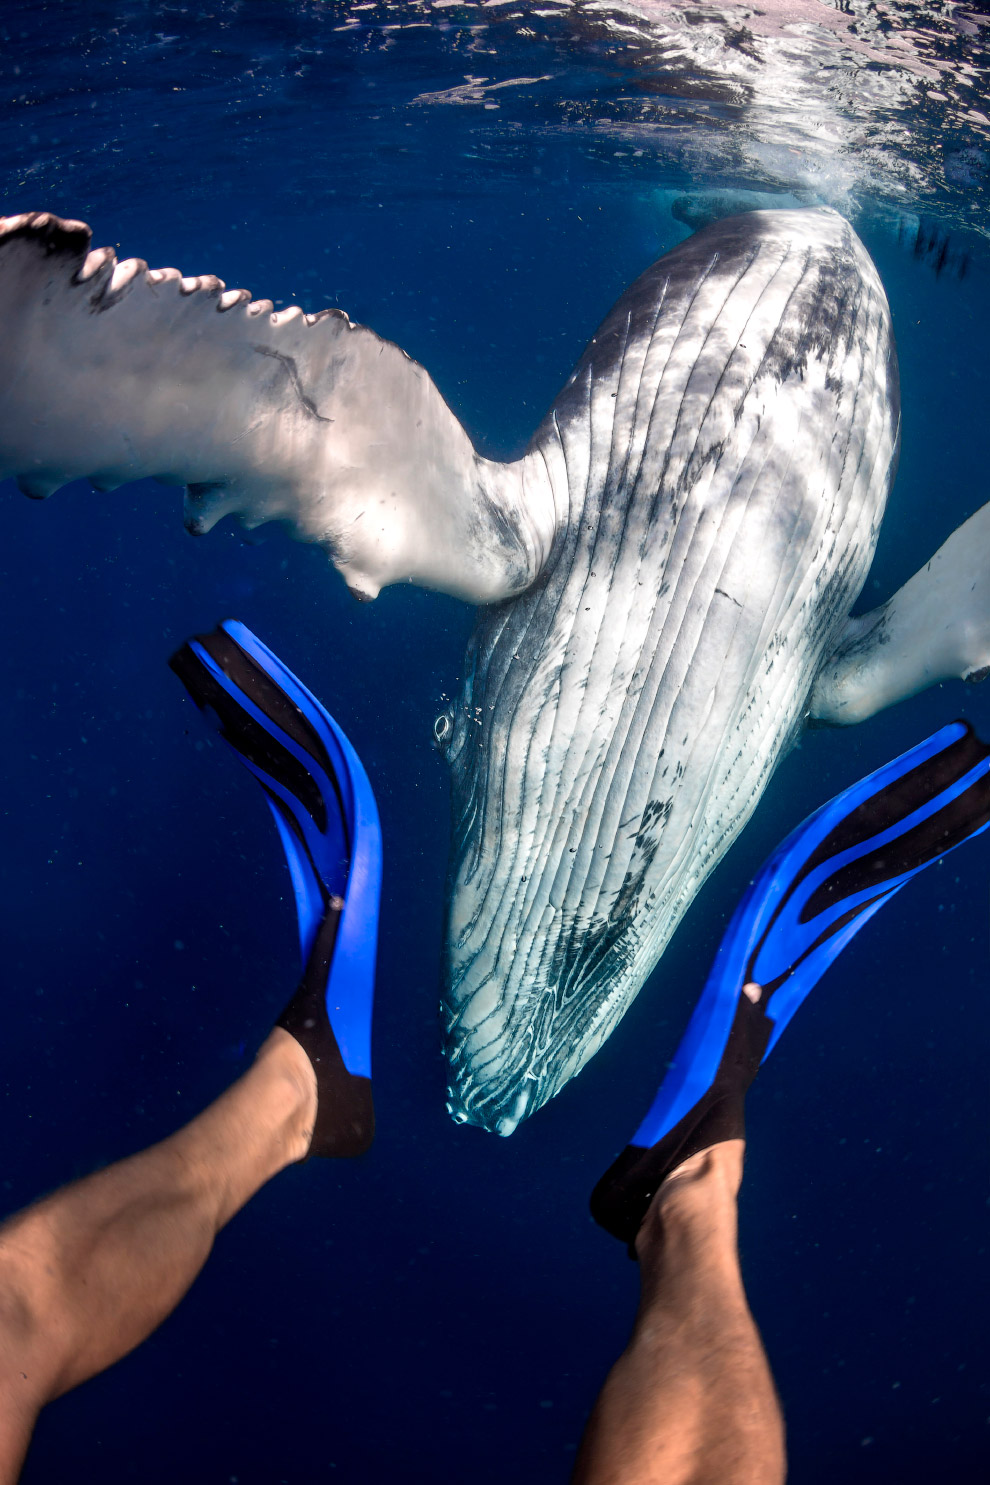 PHOTOS: Swimming with whales